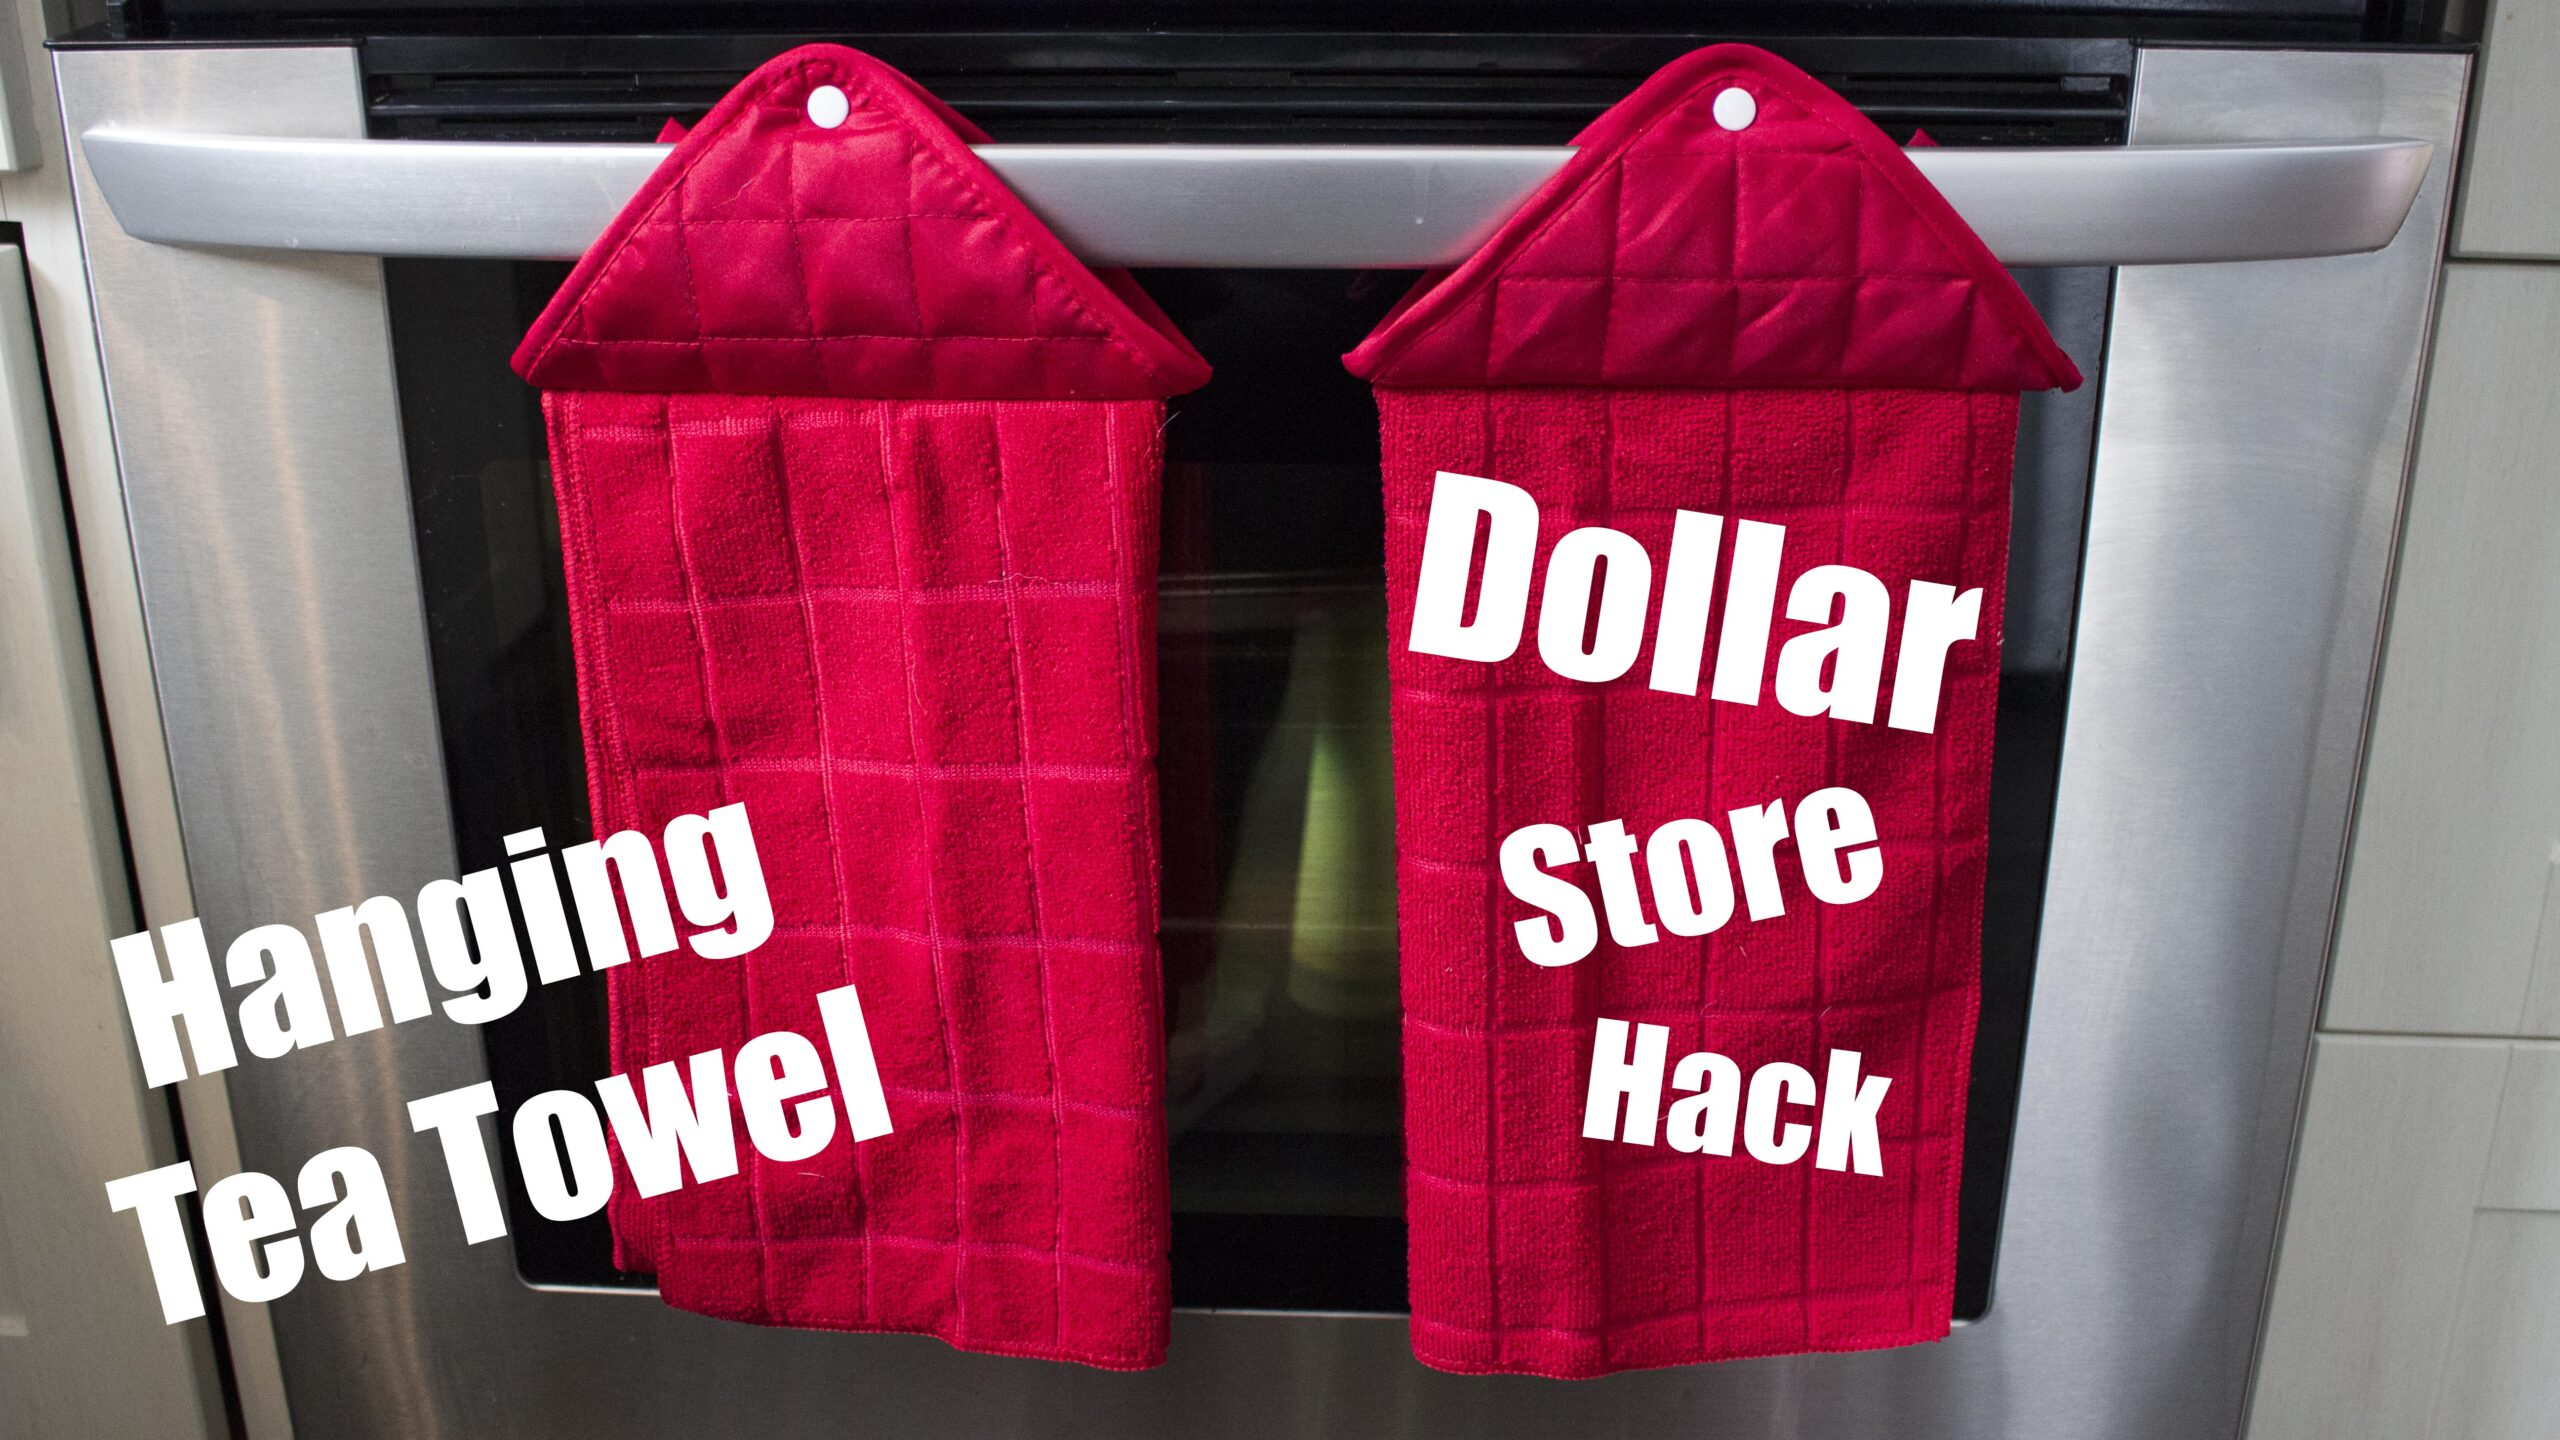 Dollar Tree Hanging Tea Towel